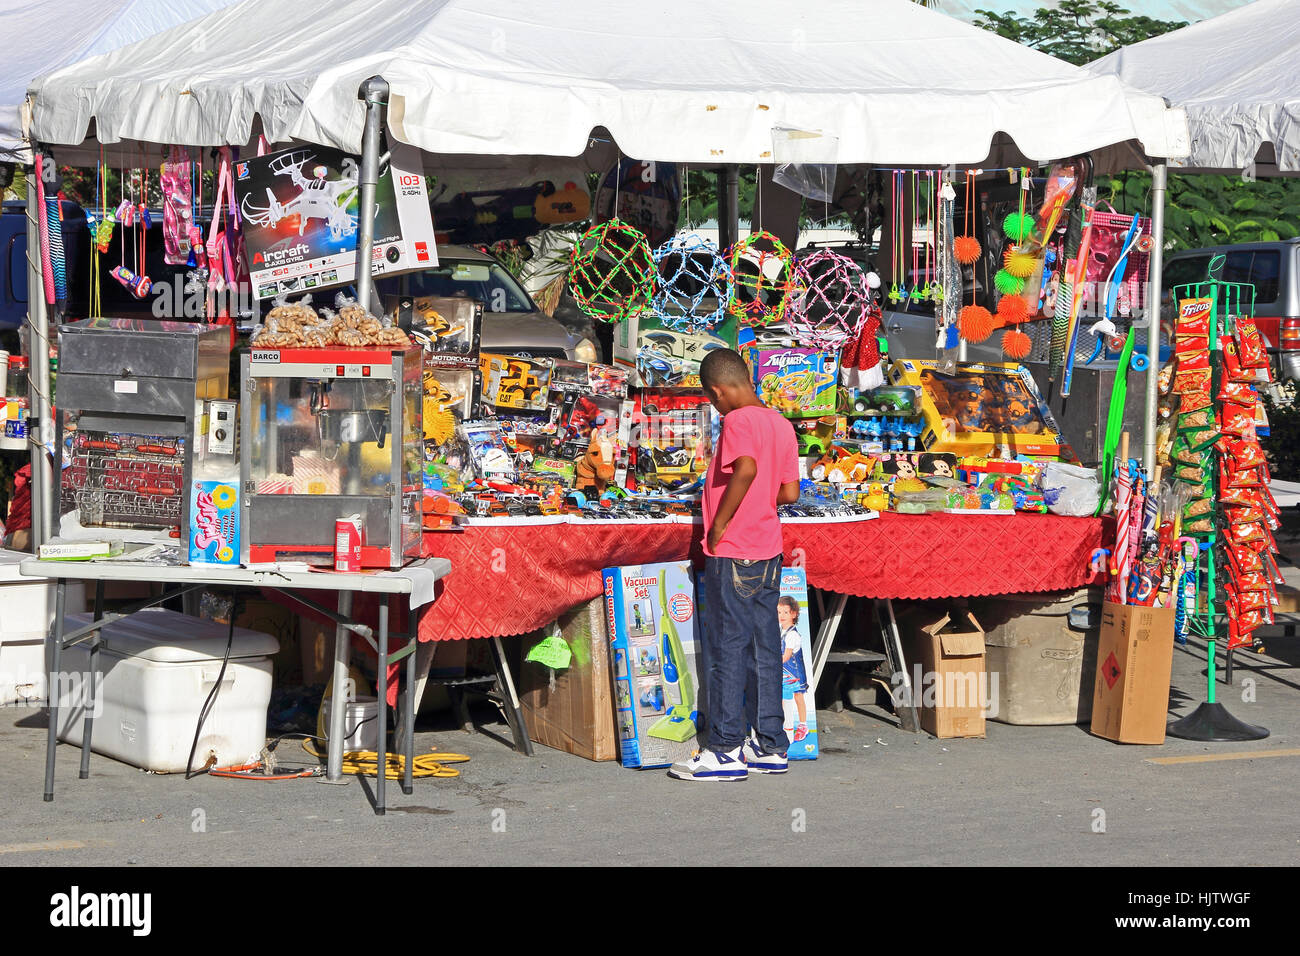 Boy looking at toys on market stall, Road Town, Tortola - Stock Image